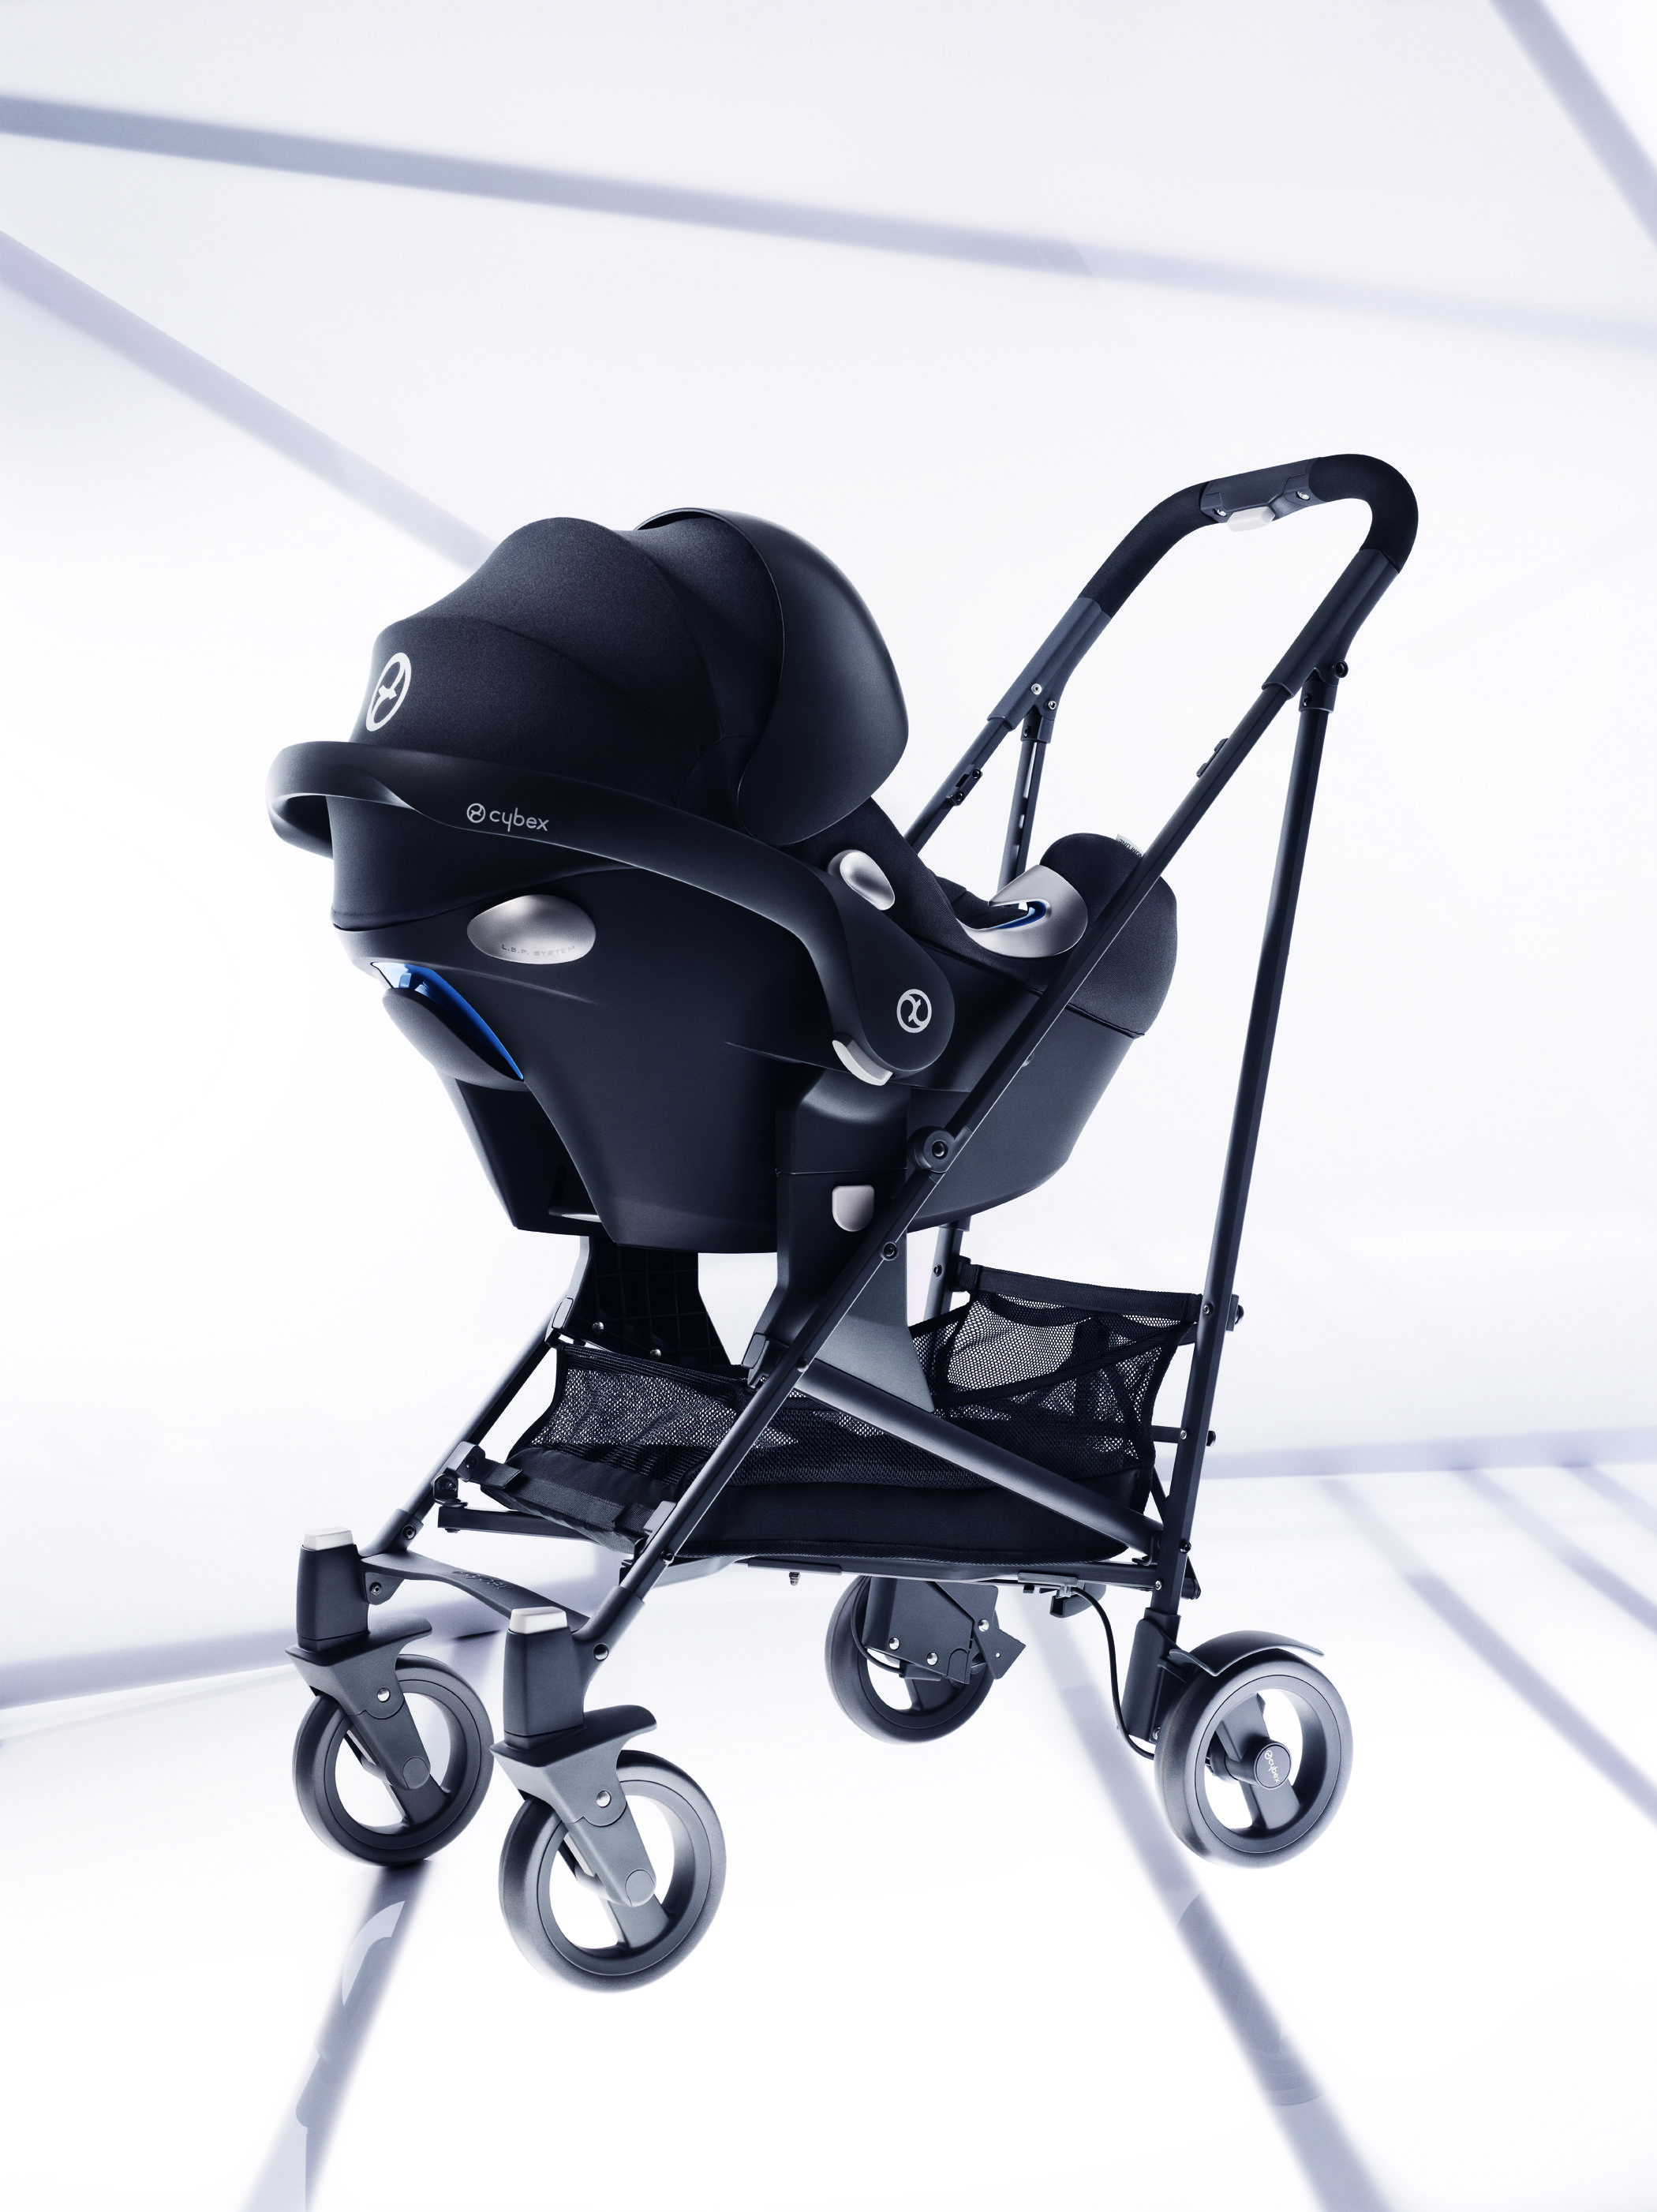 CYBEX Aton Q in charcoal with the CYBEX Callisto